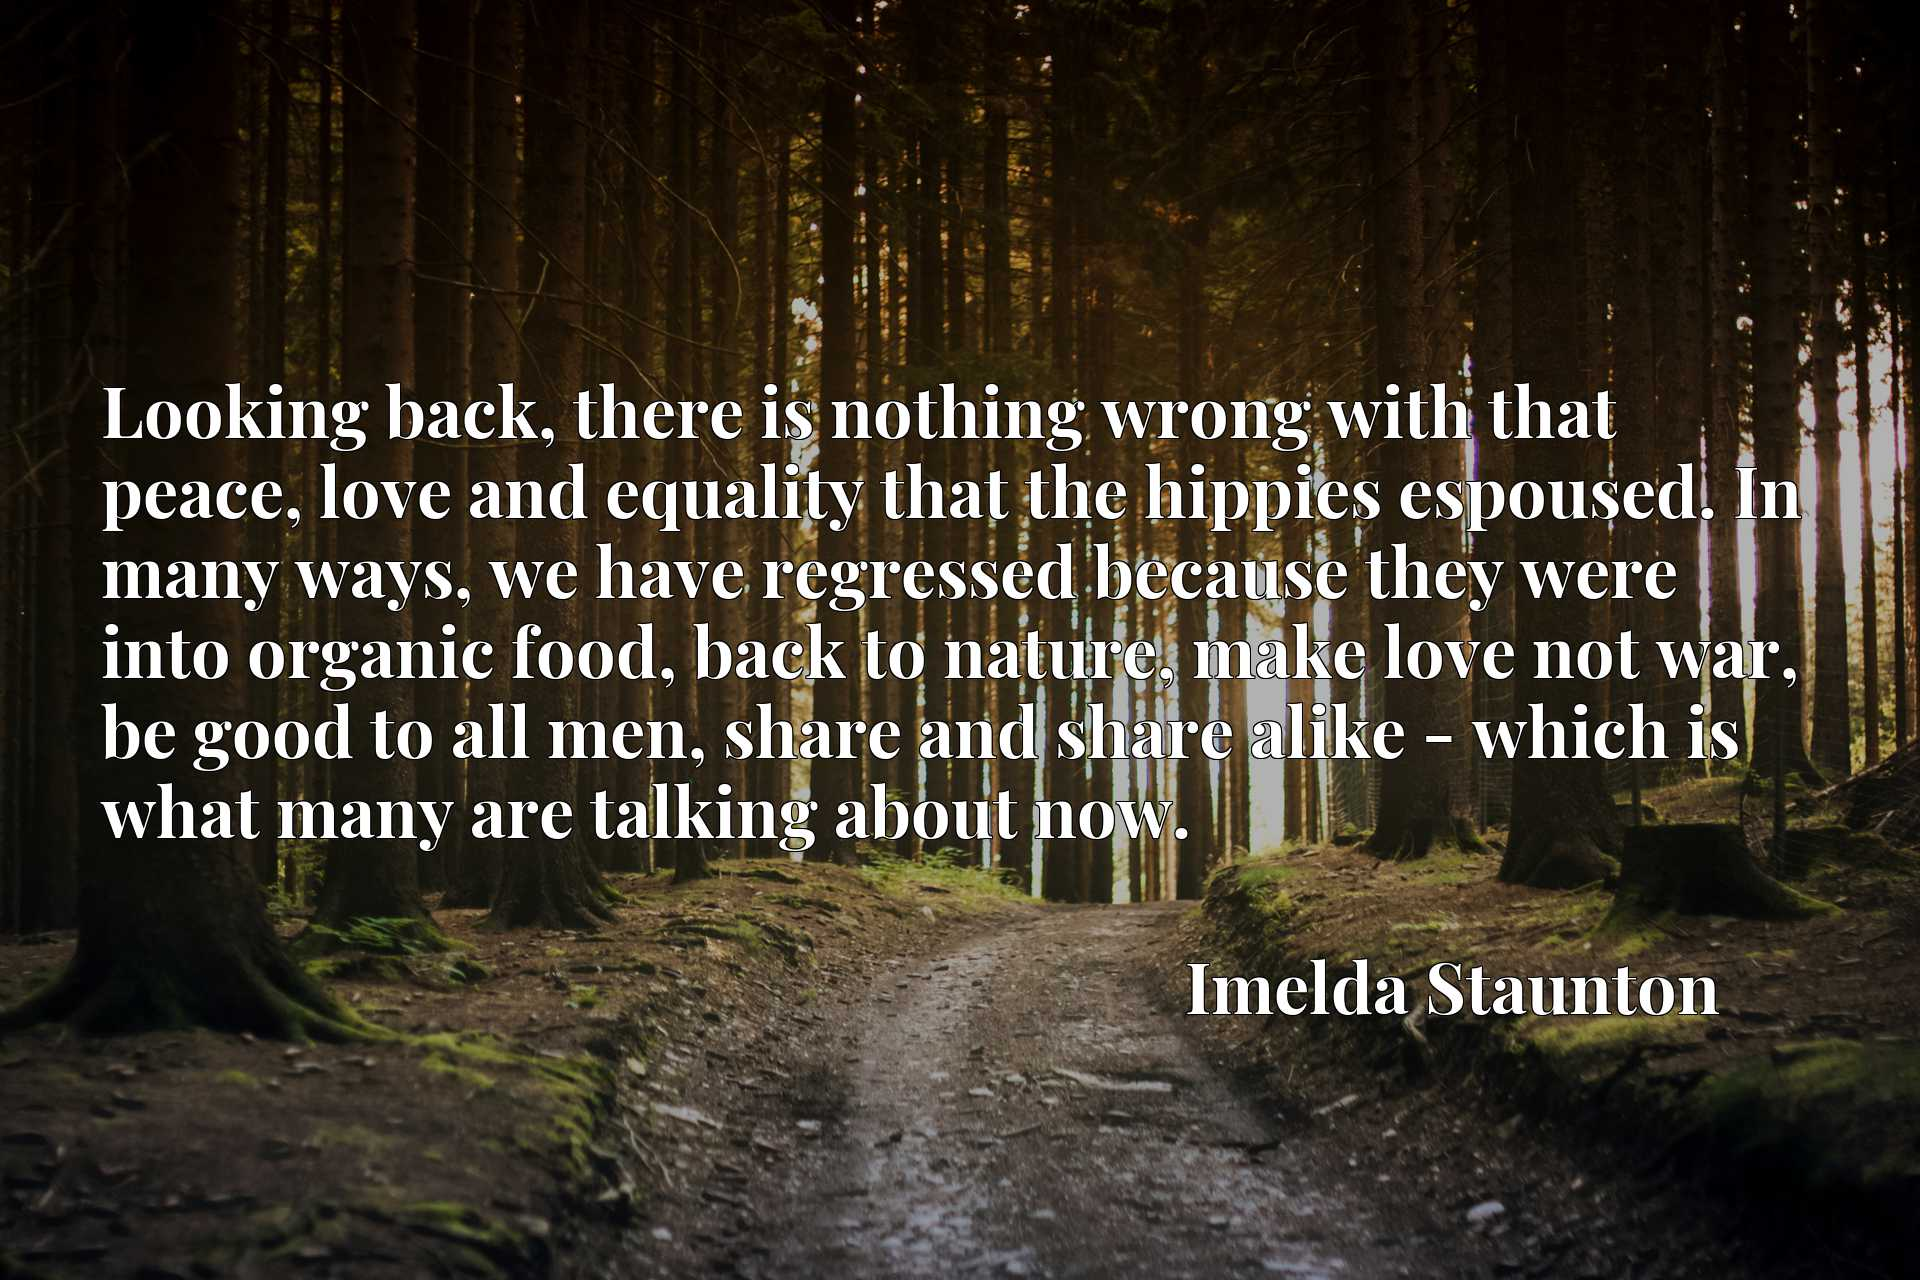 Looking back, there is nothing wrong with that peace, love and equality that the hippies espoused. In many ways, we have regressed because they were into organic food, back to nature, make love not war, be good to all men, share and share alike - which is what many are talking about now.